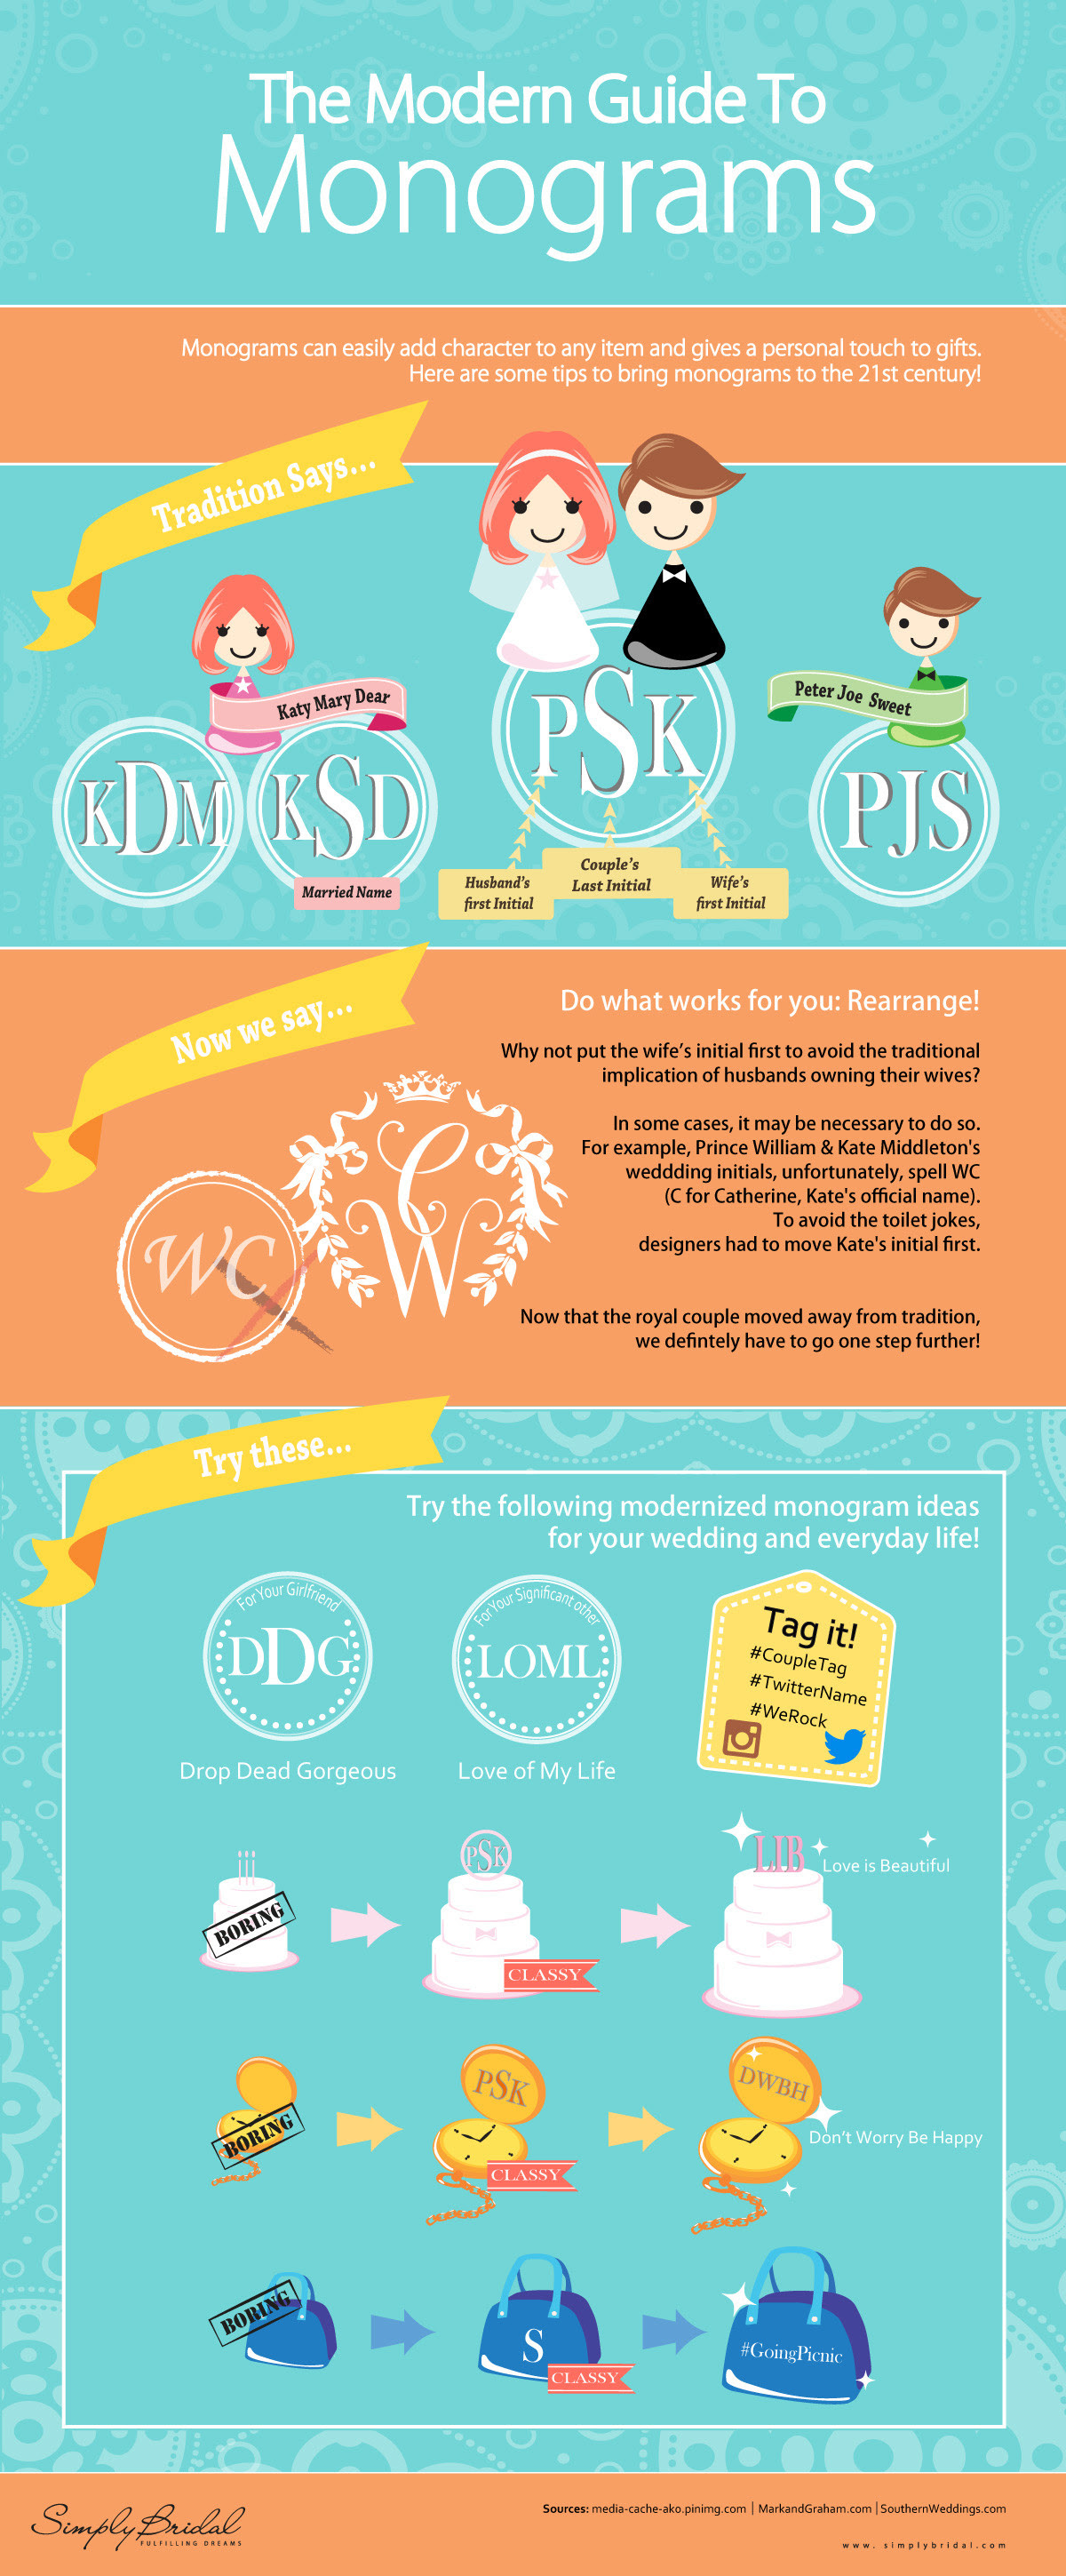 Infographic: The Modern Guide to Monograms